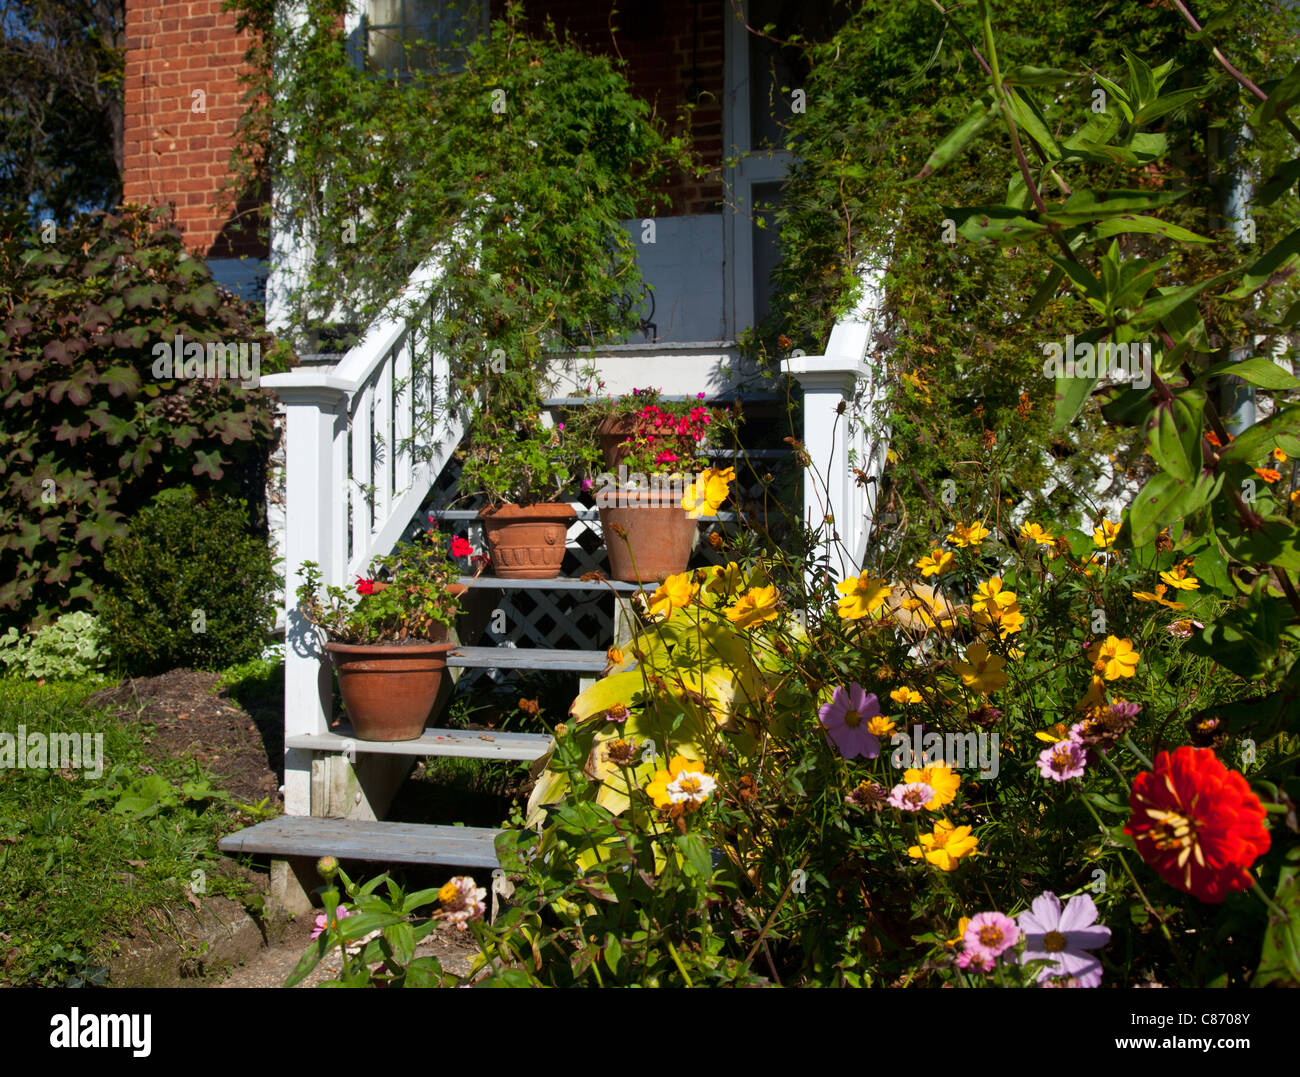 Flowering garden surrounds the white painted wooden stairs leading to front door of house Stock Photo